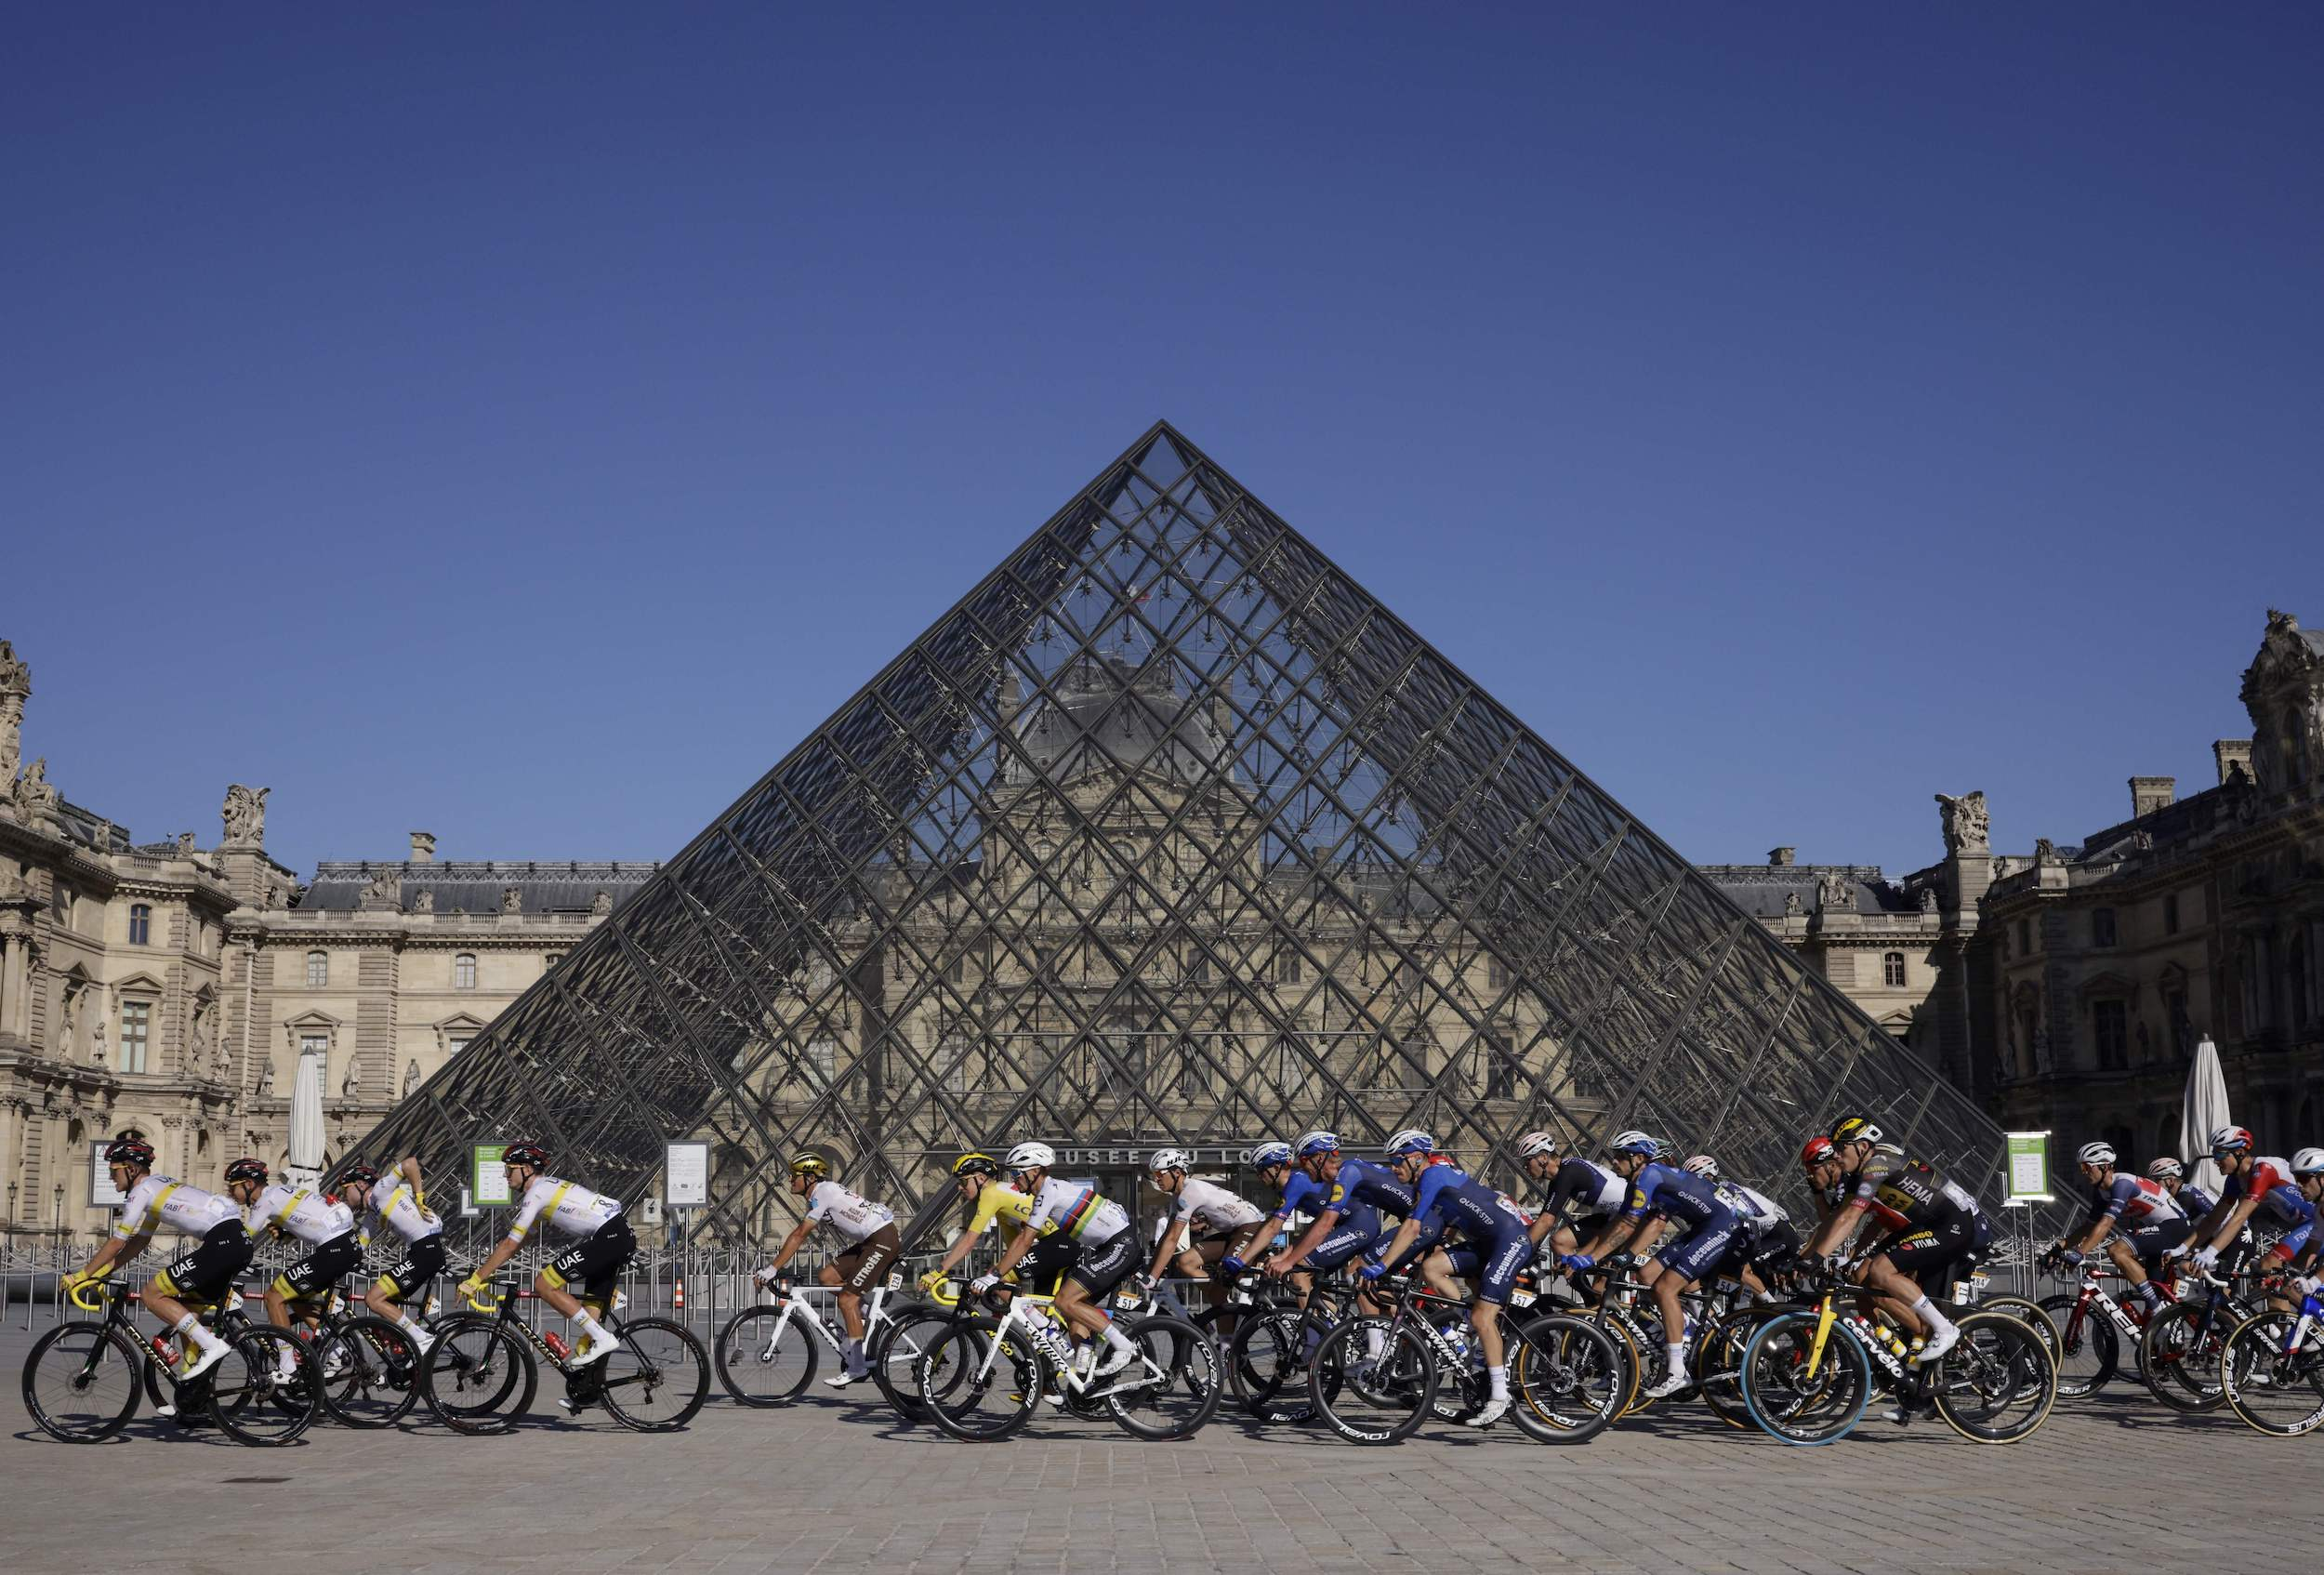 Peloton rides in front of the pyramid at the Louvre